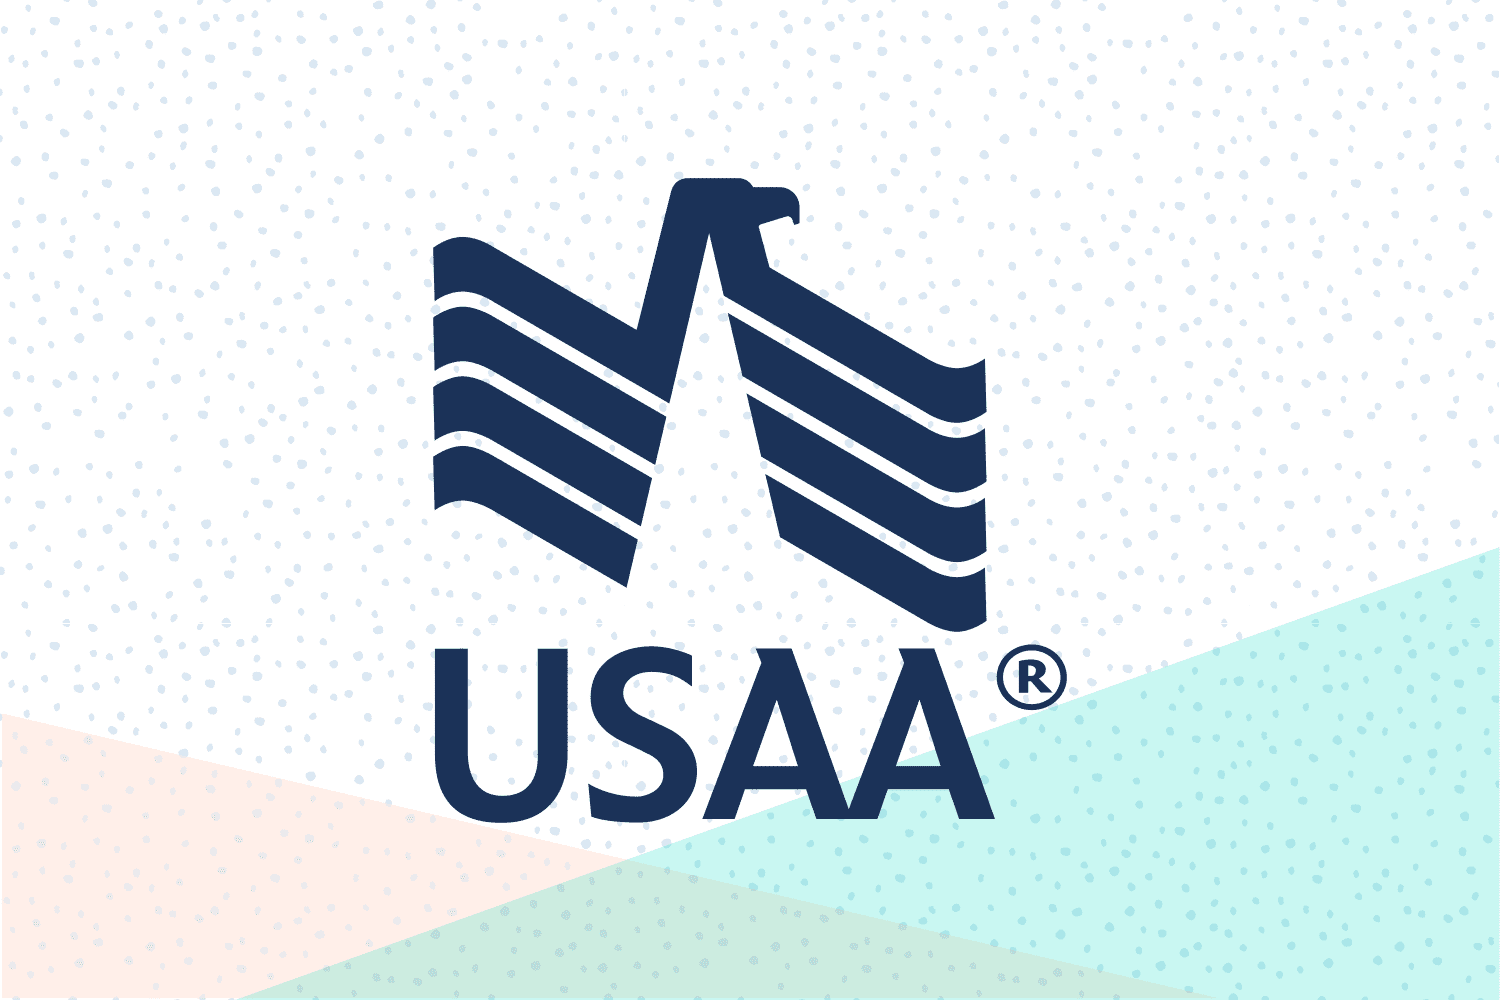 Usaa Car Insurance Review 2020